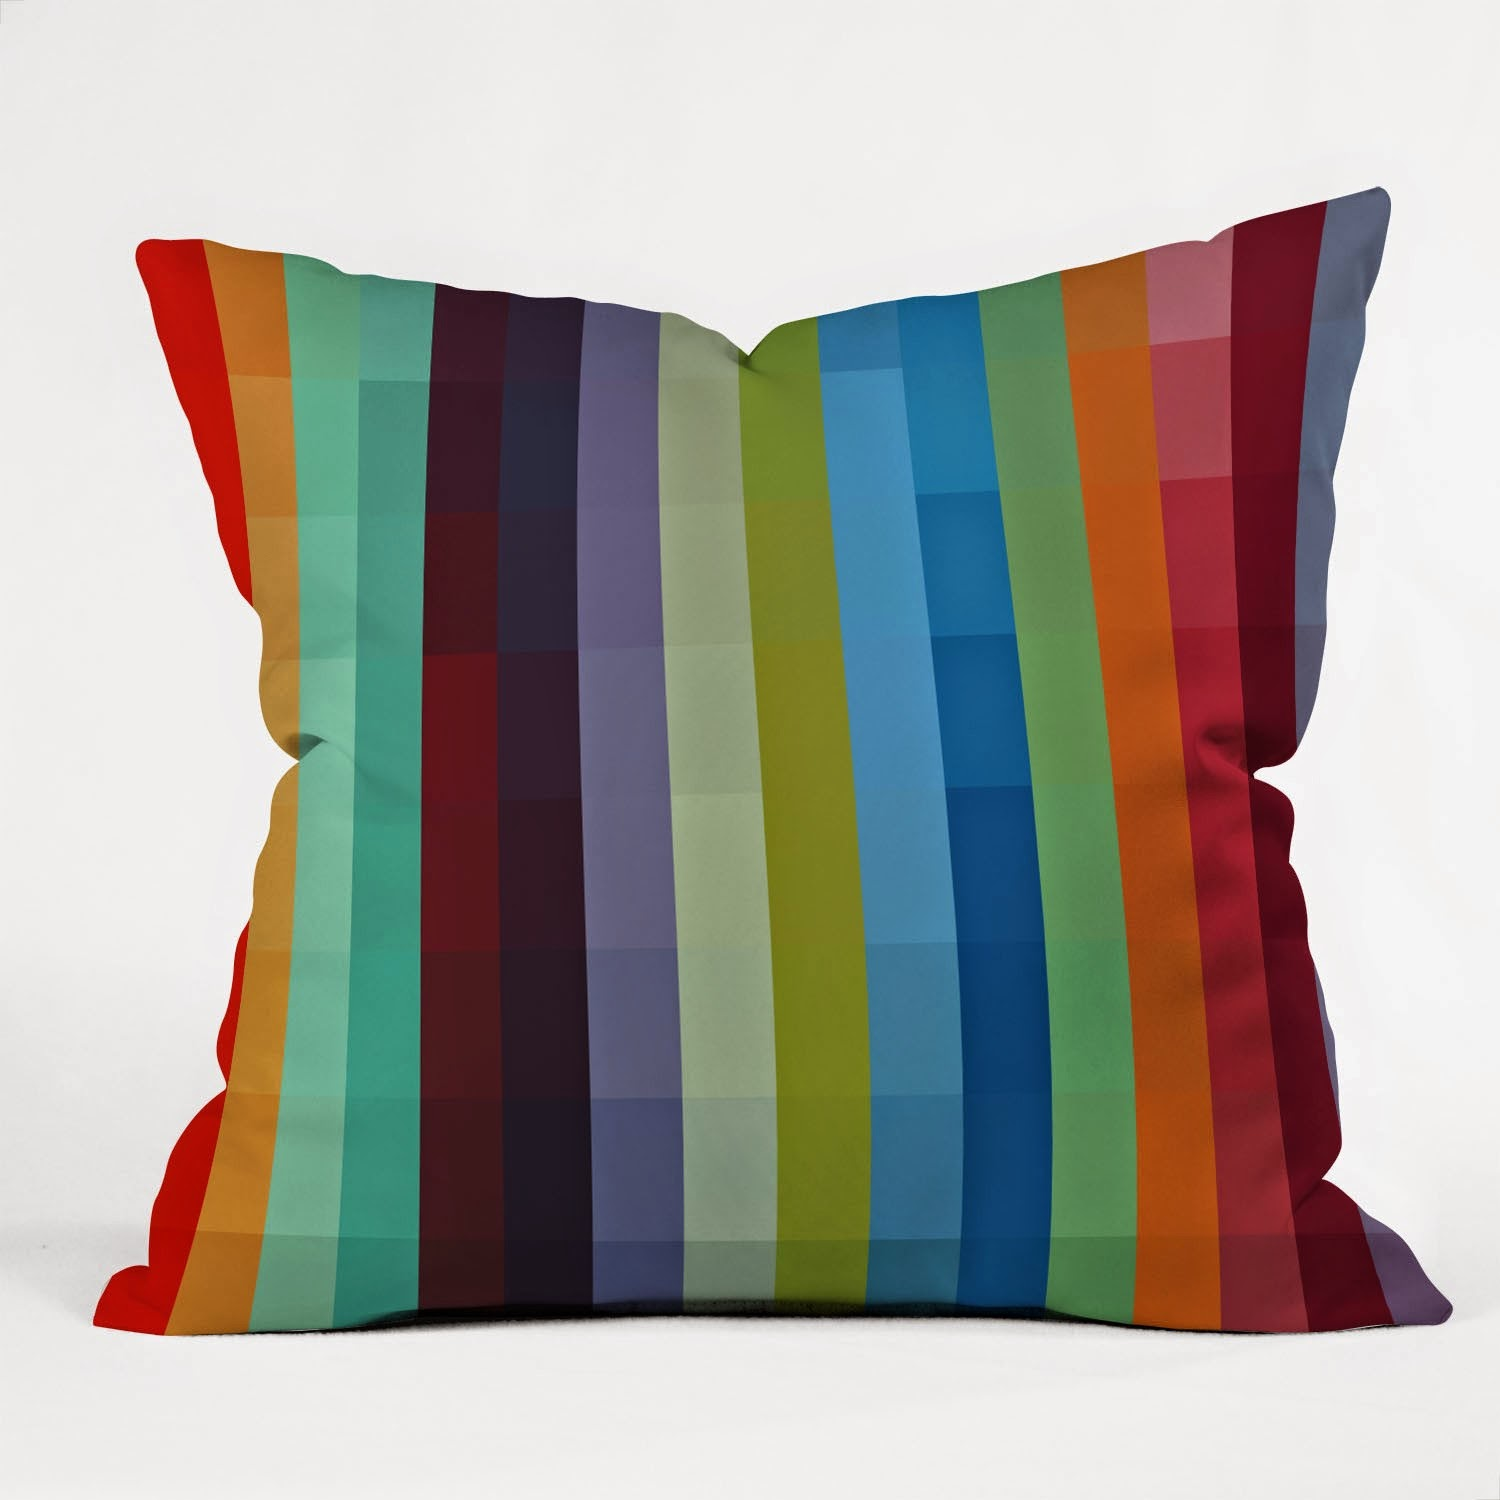 : http://www.wayfair.com/DENY-Designs-Madart-Inc.-Woven-Polyester-Throw-Pillow-13147-thr-NDY1813.html